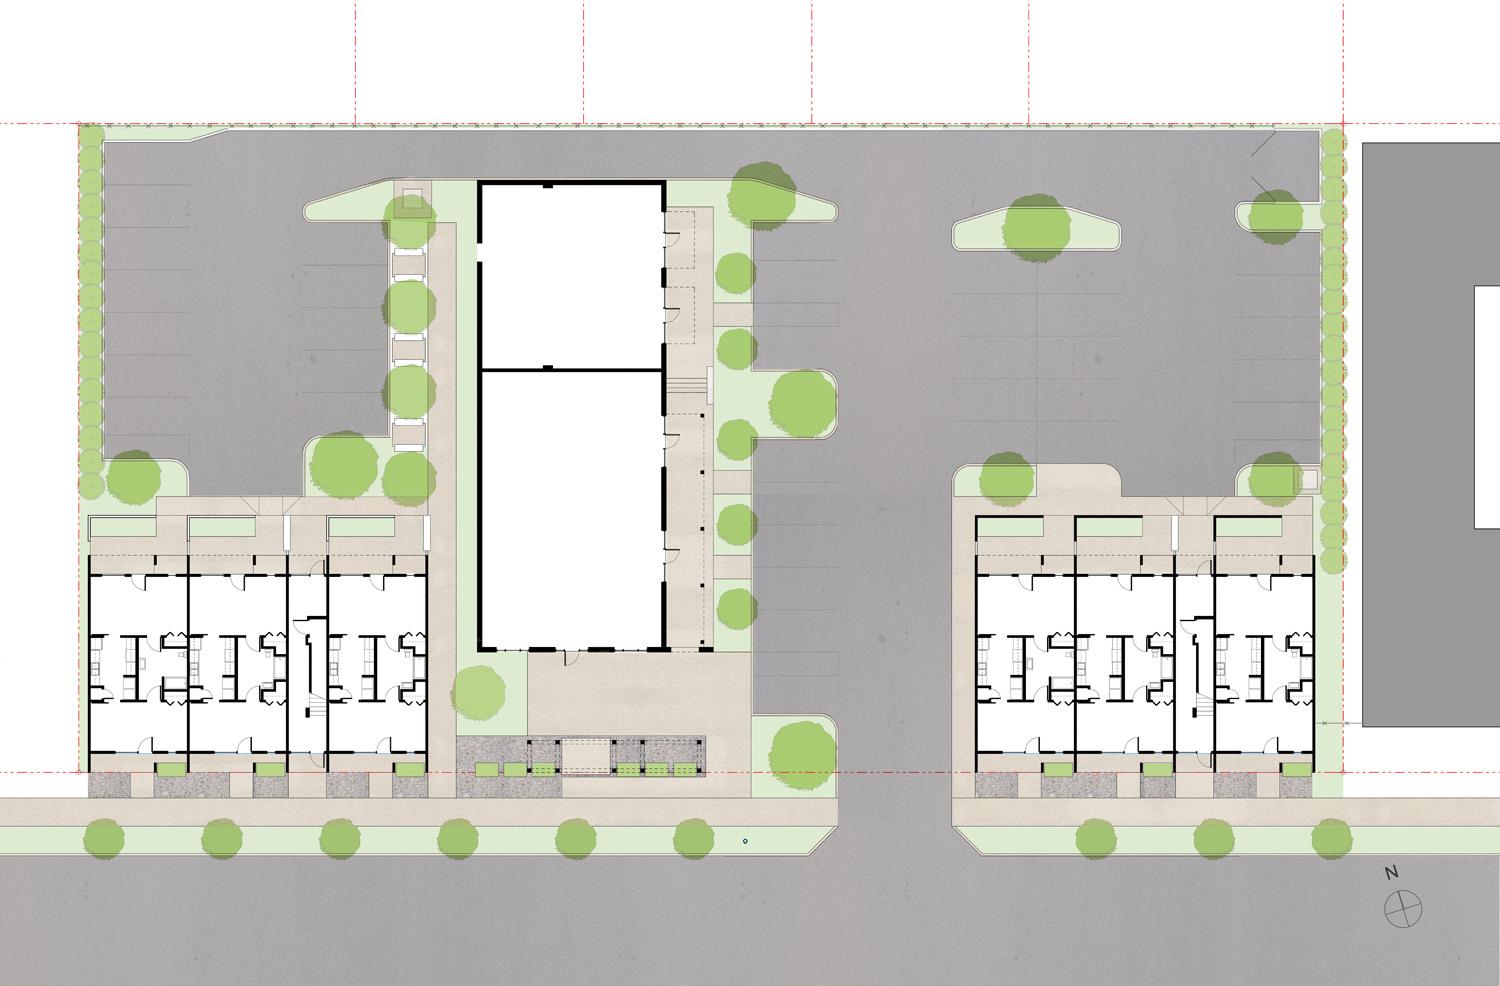 sculpture flats site plan. The former mr.t's interstate tire is in the middle and is flanked by new residential spaces.